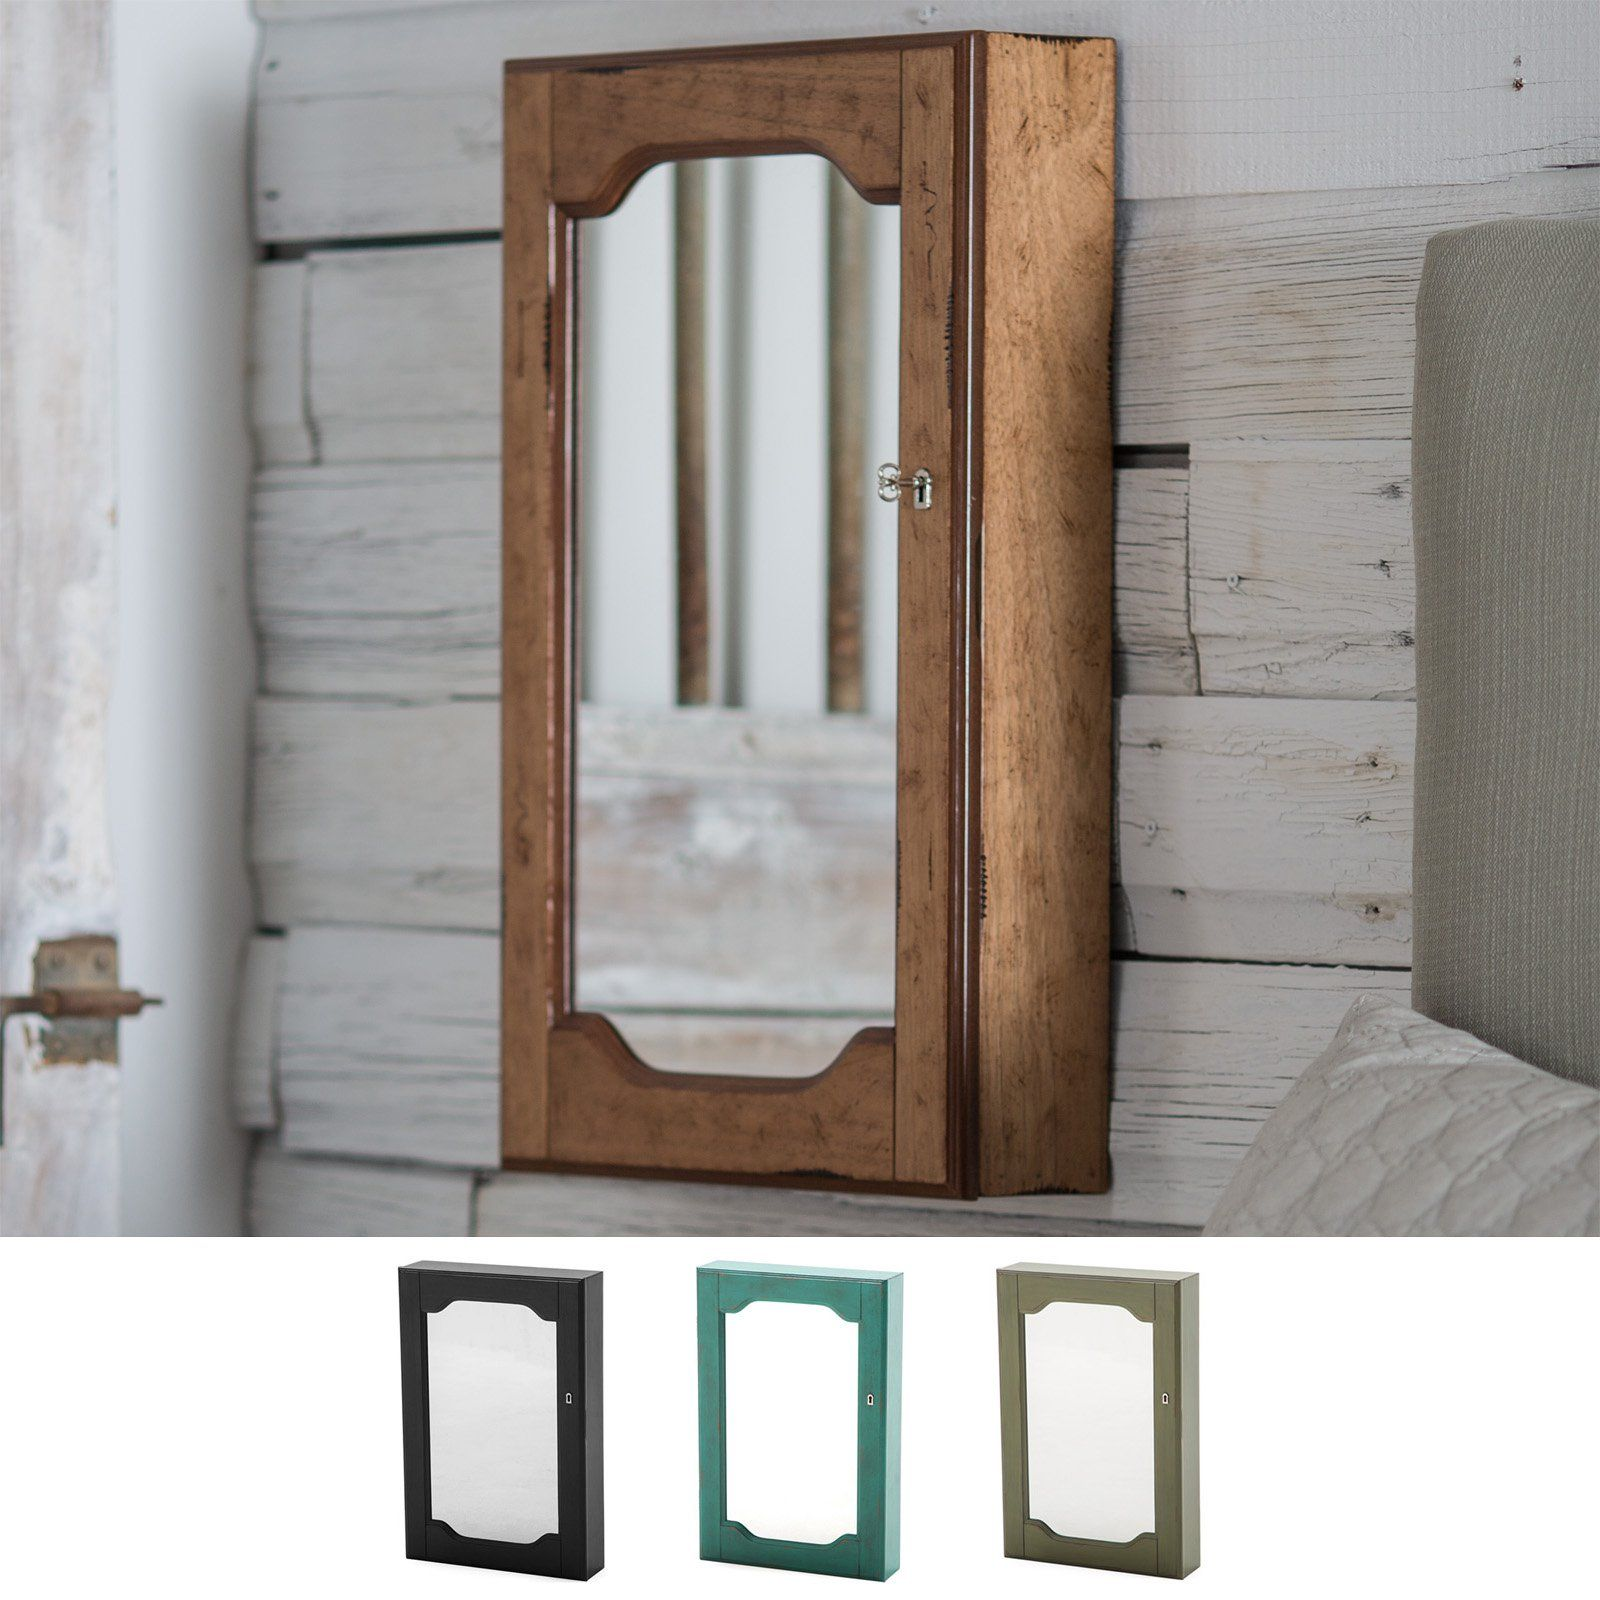 Distressed Wall Mount Mirrored Locking Jewelry Armoire from